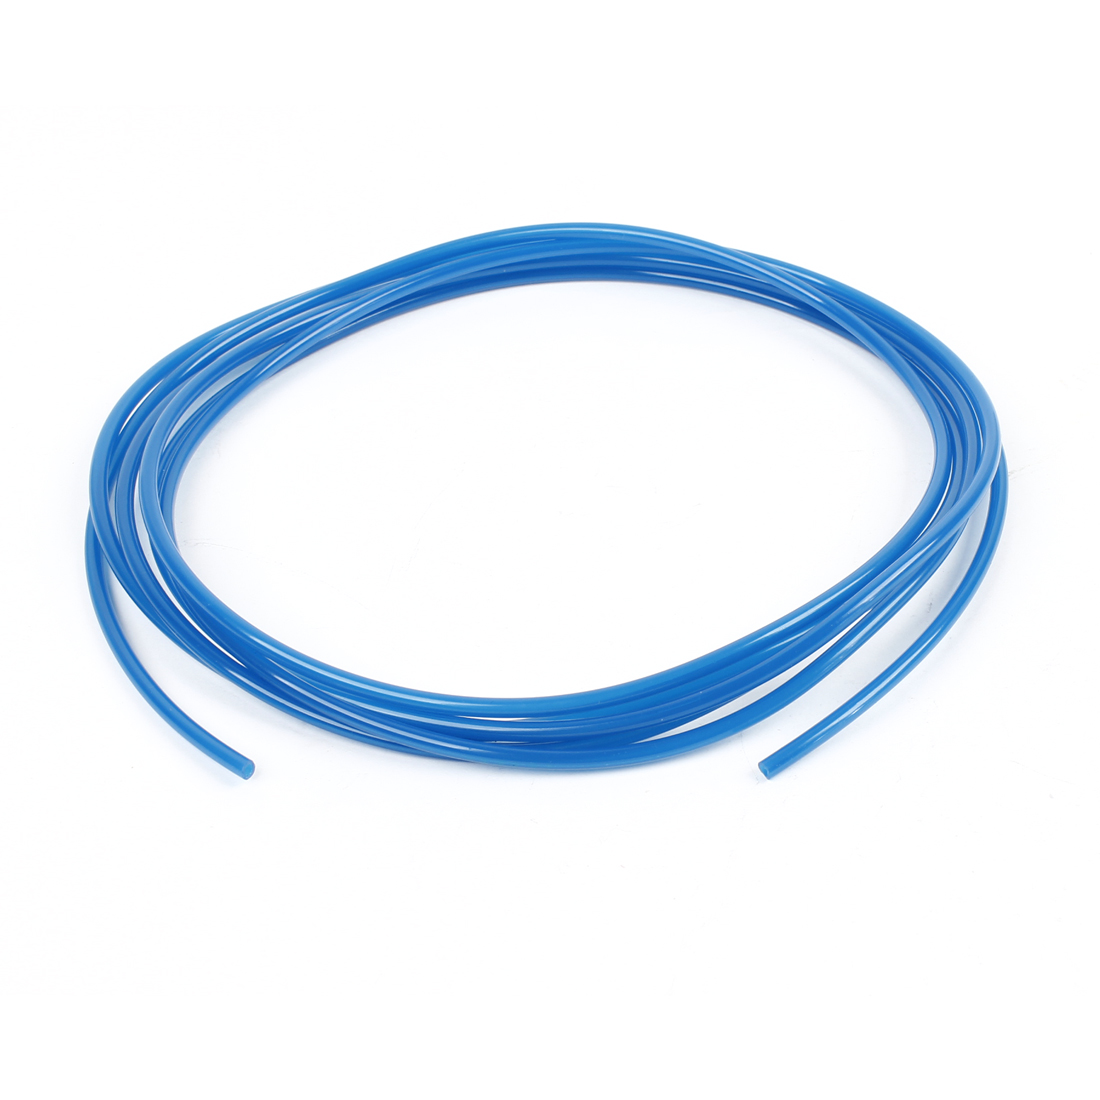 Blue 3 Meters 4mm OD 2.5mm ID 0.75mm Wall Thickness PU Air Hose Pipe